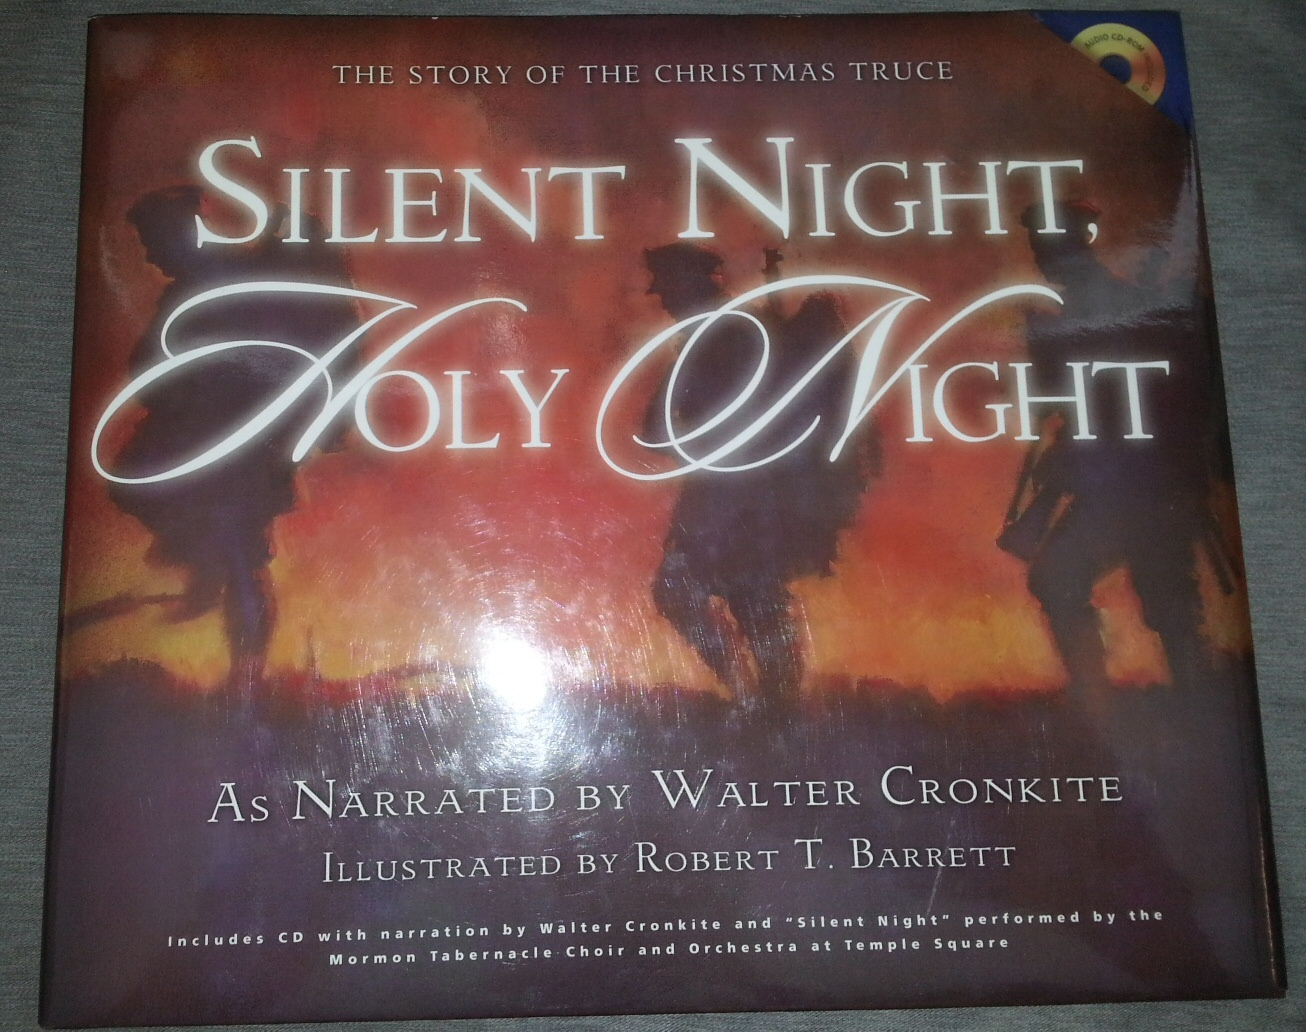 SILENT NIGHT, HOLY NIGHT -  The Story of the Christmas Truce, Wunderli, Stephen And Warner, David And Wilberg, Mack; Barrett, Robert T. And Cronkite, Walter And C